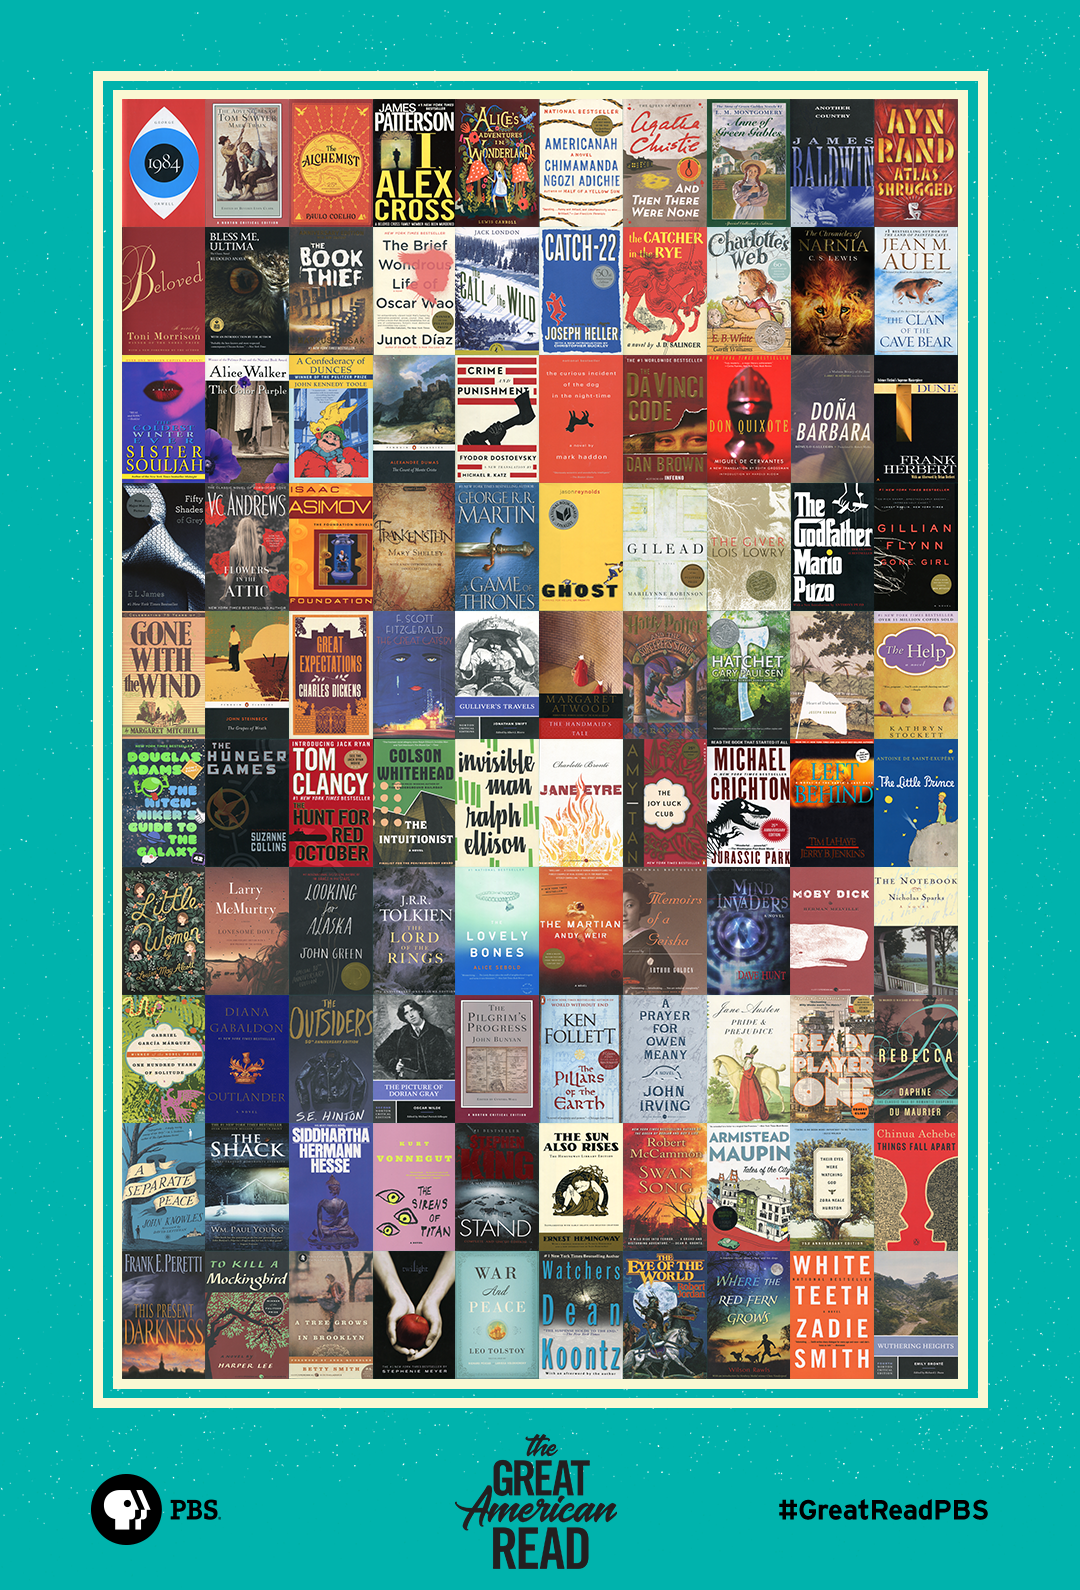 tgar_book_covers_poster_1080x1590_fb_deliver.png